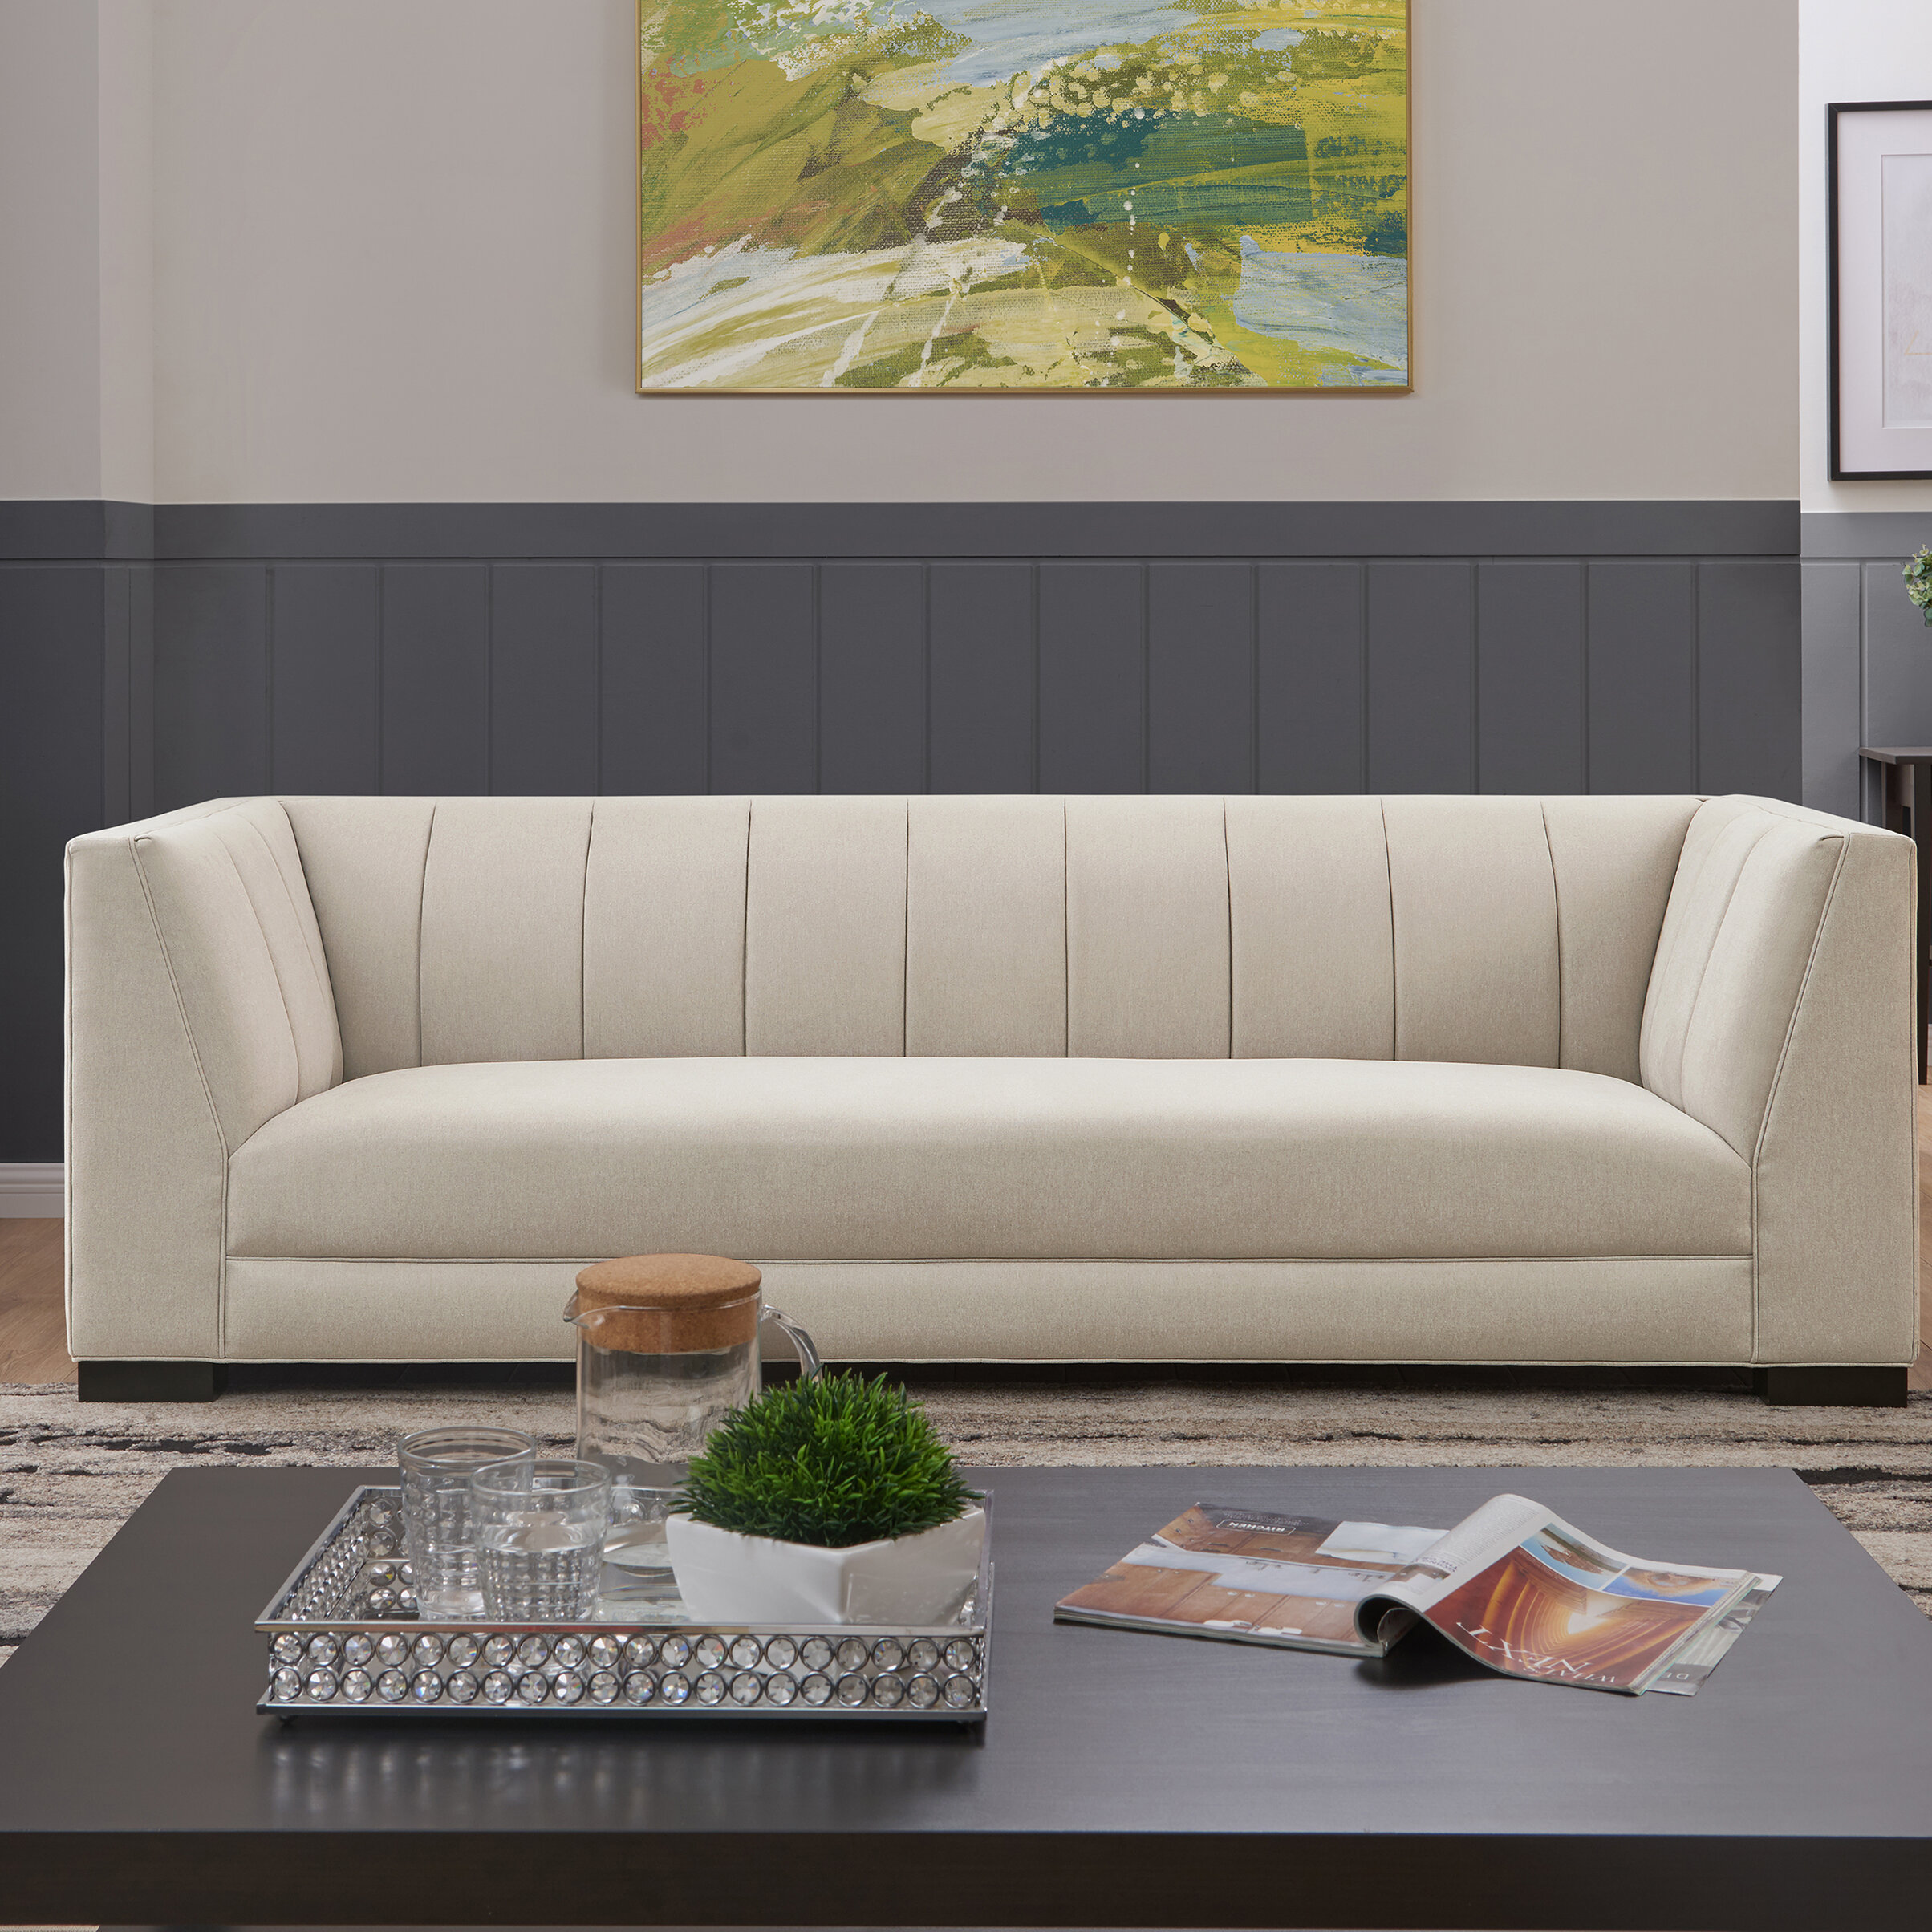 Orren ellis fraser tufted back sofa in light grey plush low pile velvet wayfair ca